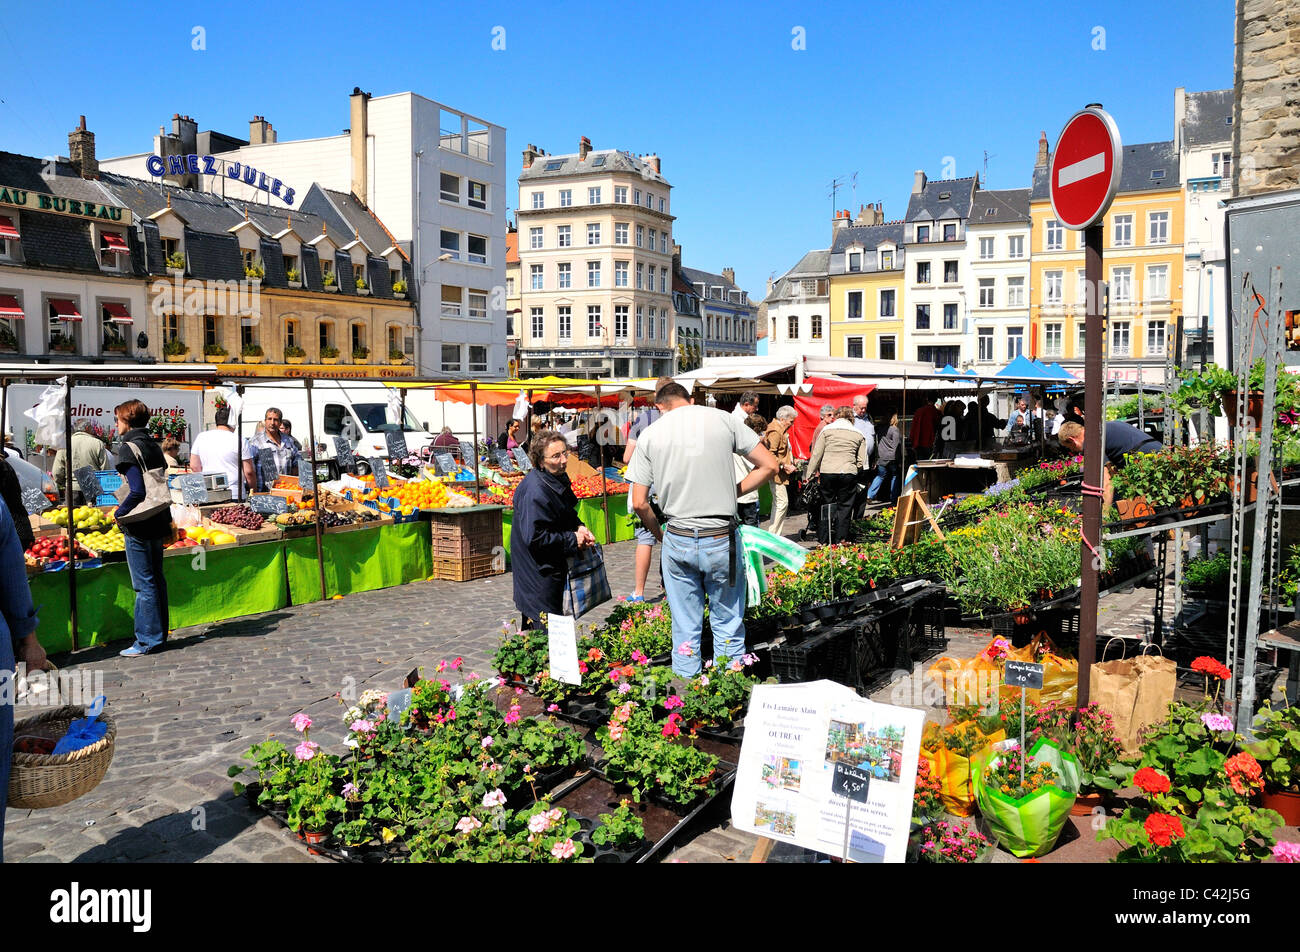 market place boulogne sur mer france stock photo 36937532 alamy. Black Bedroom Furniture Sets. Home Design Ideas